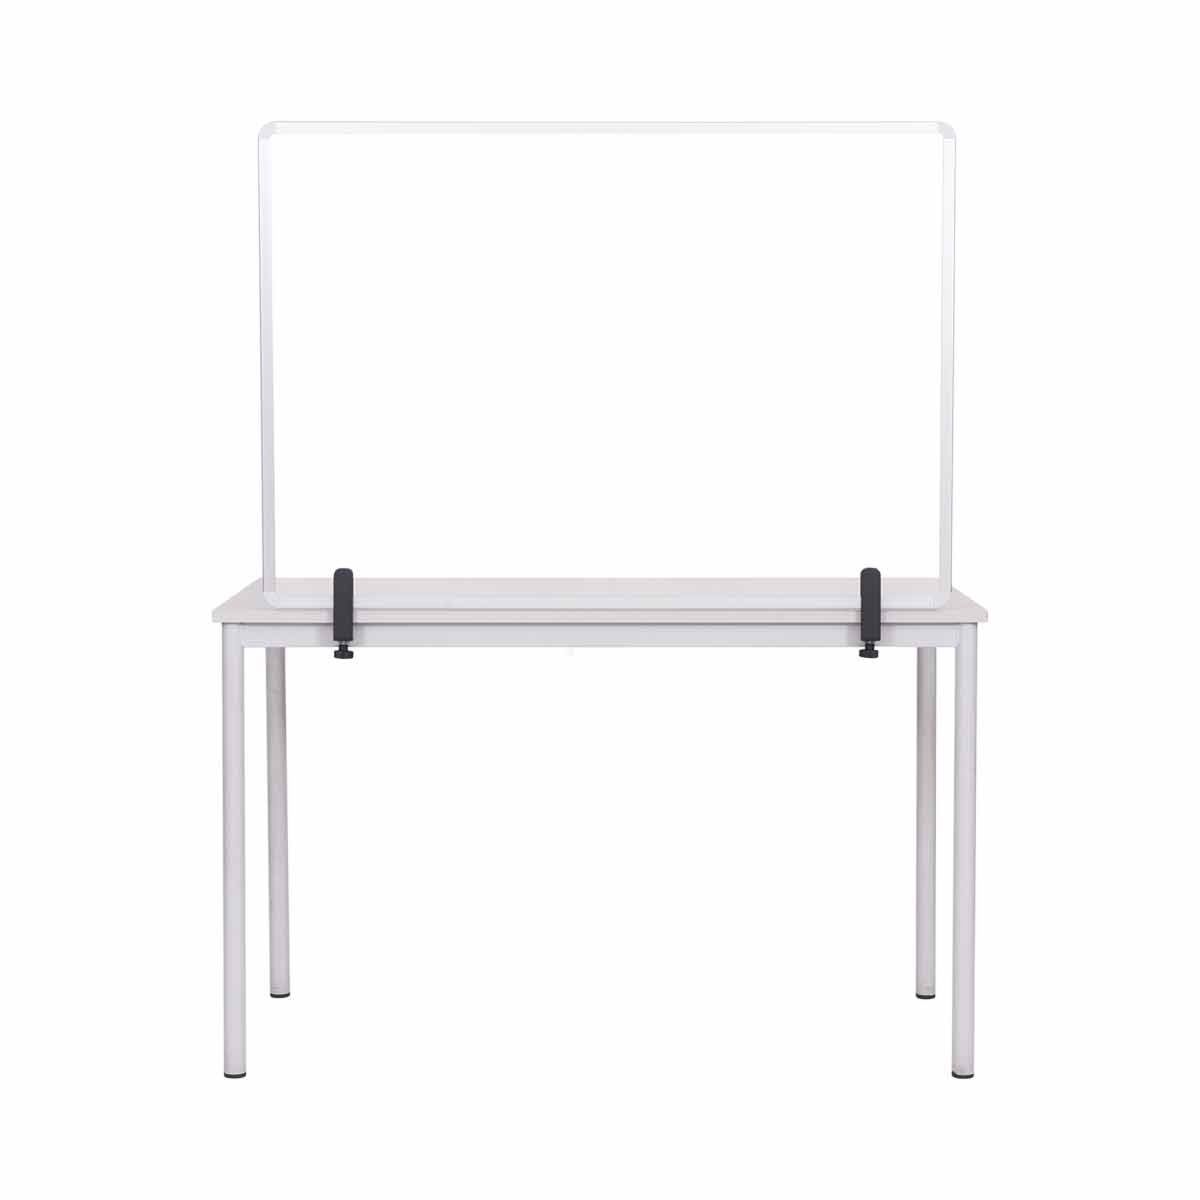 Bi-Office Protector Desktop Glass Board with Aluminium Frame and Clamps 104x70 cm